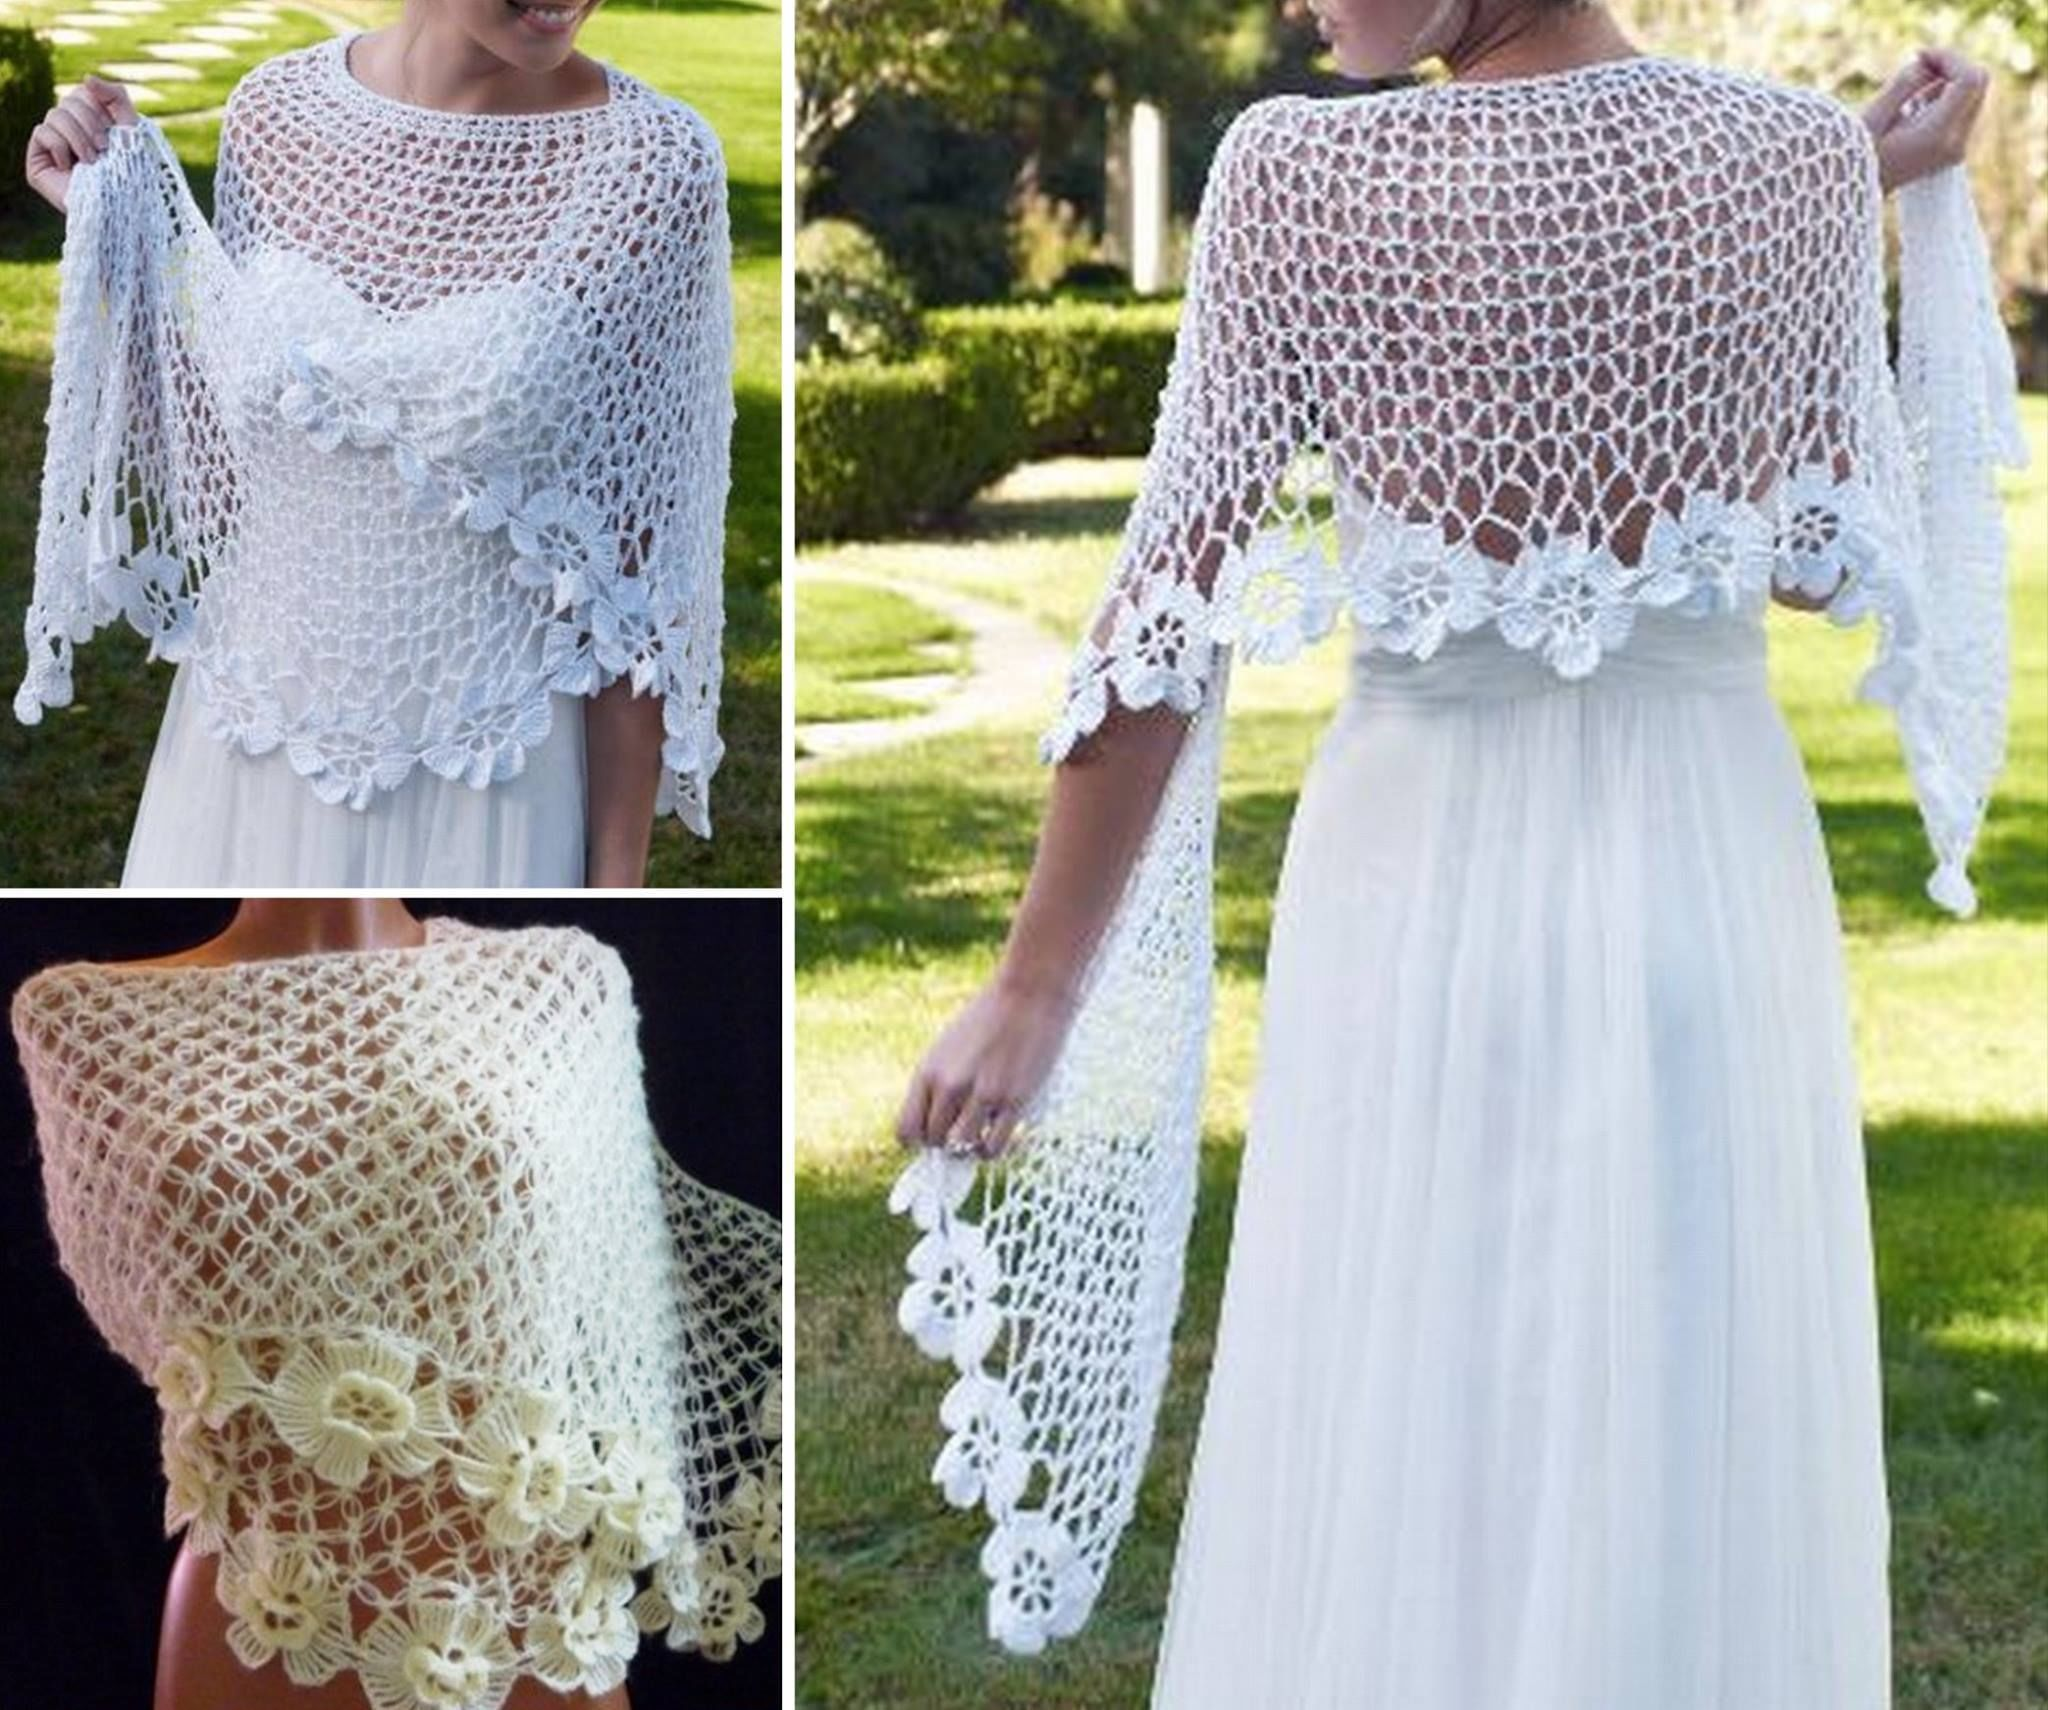 DIY Crochet Shawl Pictures Photos And Images For